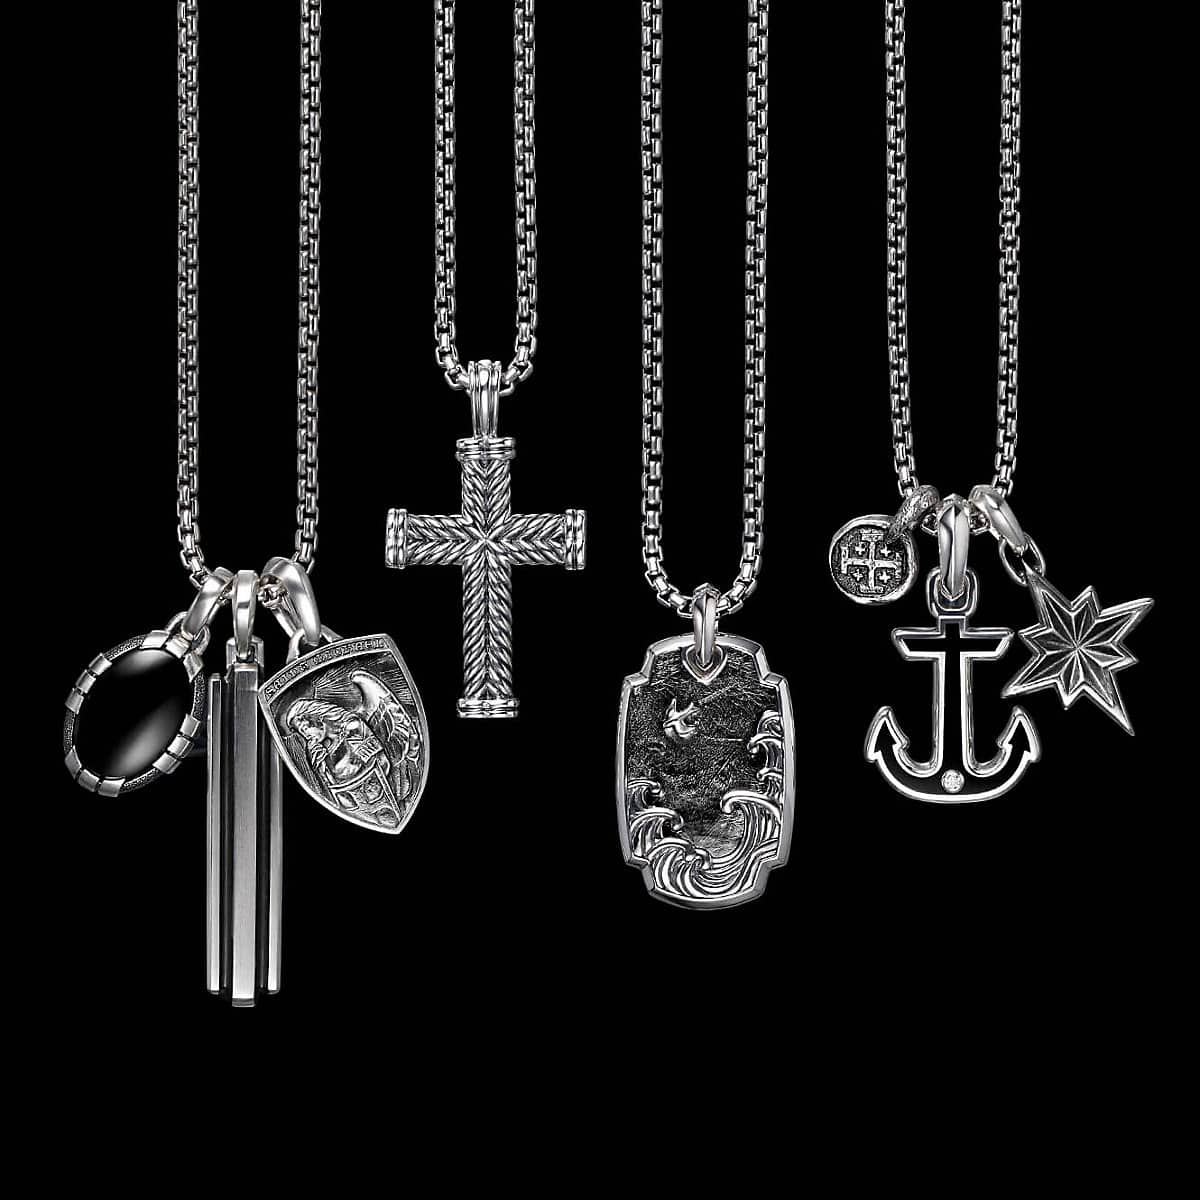 A color photograph shows four David Yurman men's box-chain necklaces in sterling silver hanging in front of a black background with white latitude and longitude lines. Each necklace is strung with one or three David Yurman men's amulets crafted from sterling silver. From left is a Southwest amulet with black onyx, a Deco amulet, a Saint Michael shield-shaped amulet, a Chevron cross, a Waves tag with forged carbon, a Shipwreck coin amulet, a Maritime anchor with black onyx and a single diamond and a Maritime North Star amulet.